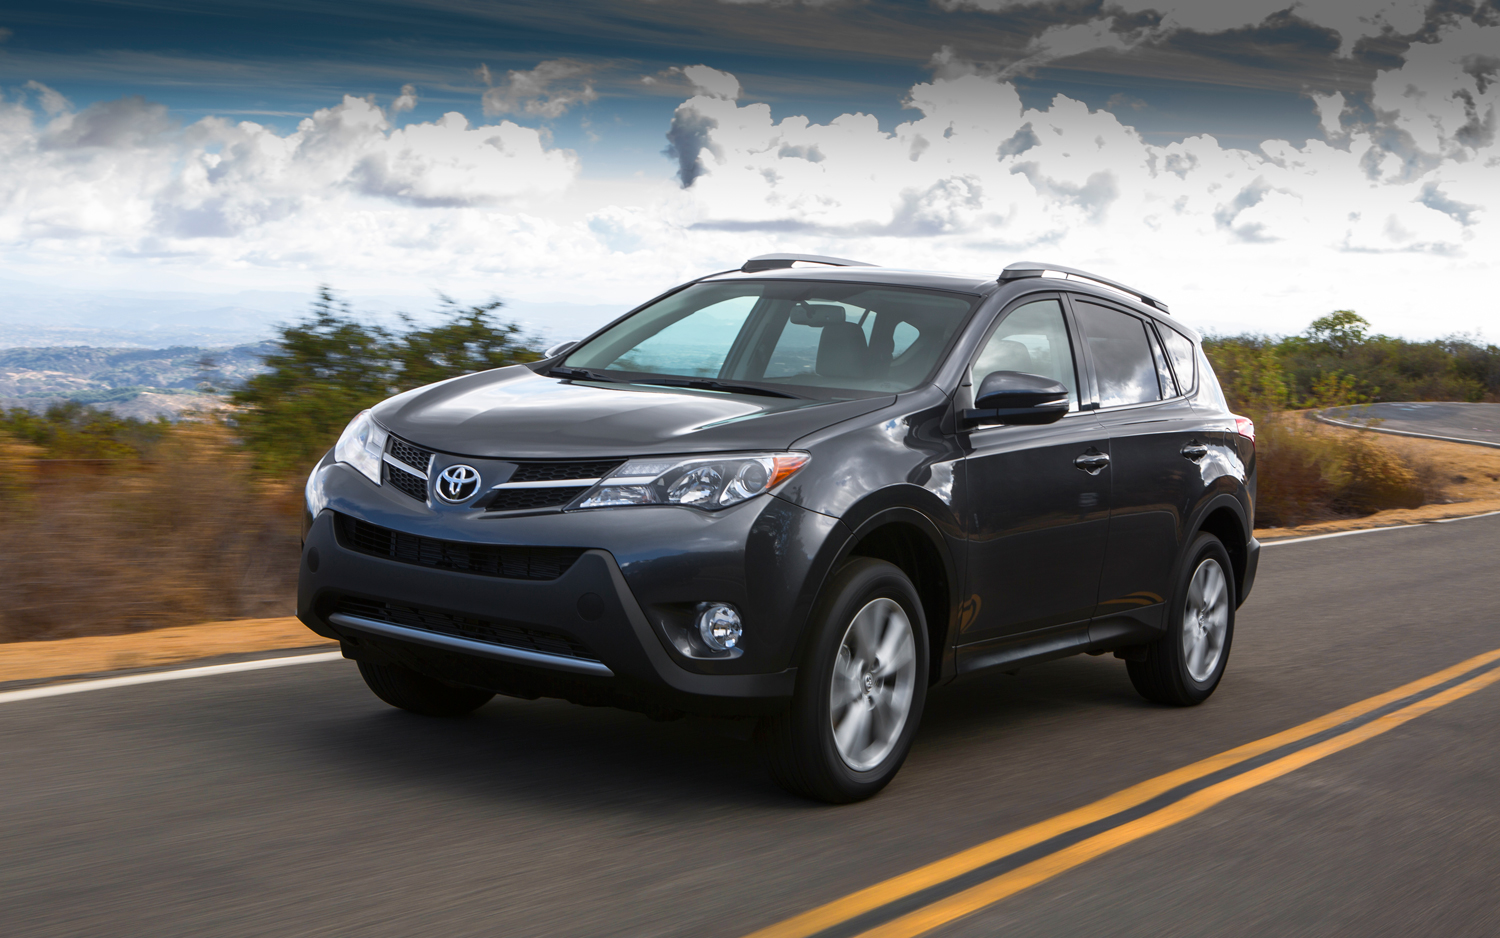 2013 Toyota Rav4 In Beloit Wi Hesser Wiring Diagram New Vios